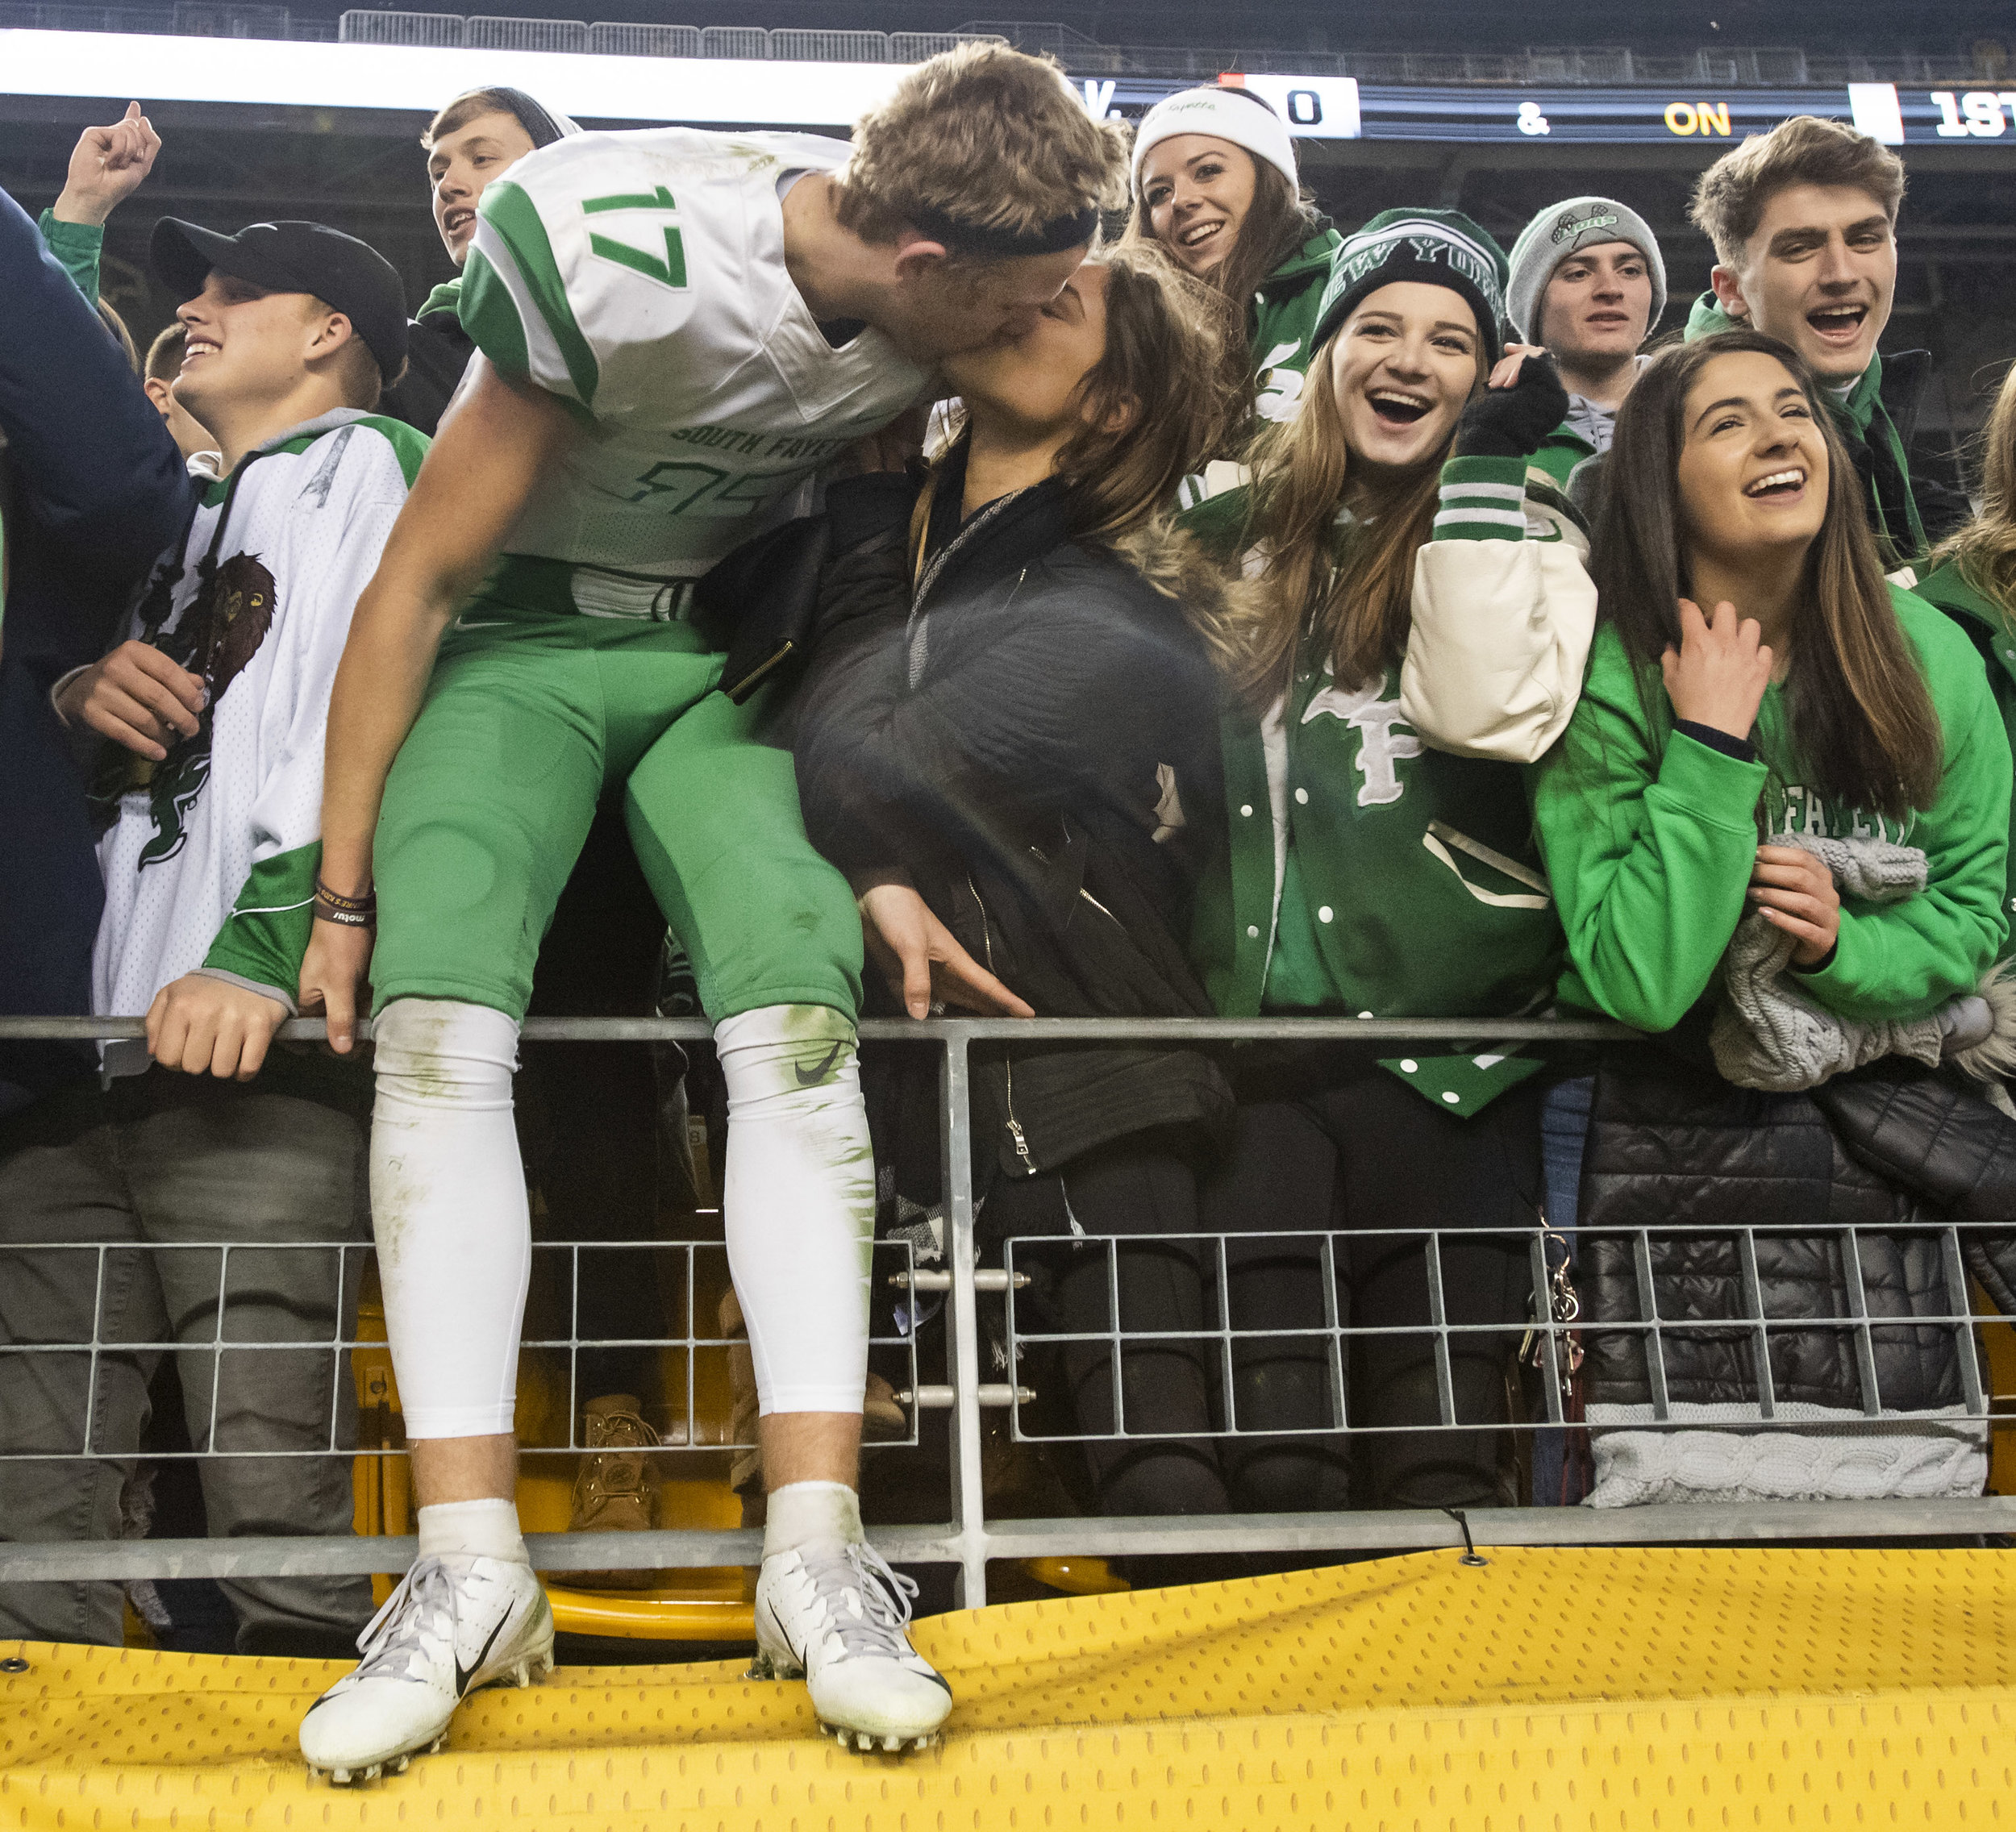 South Fayette's Jamie Diven and Sareena Waskowiak kiss after South Fayette beat Thomas Jefferson, 31-24, during the WPIAL Class 4A championship on Saturday, Nov. 17, 2018, at Heinz Field. (Steph Chambers/Post-Gazette)